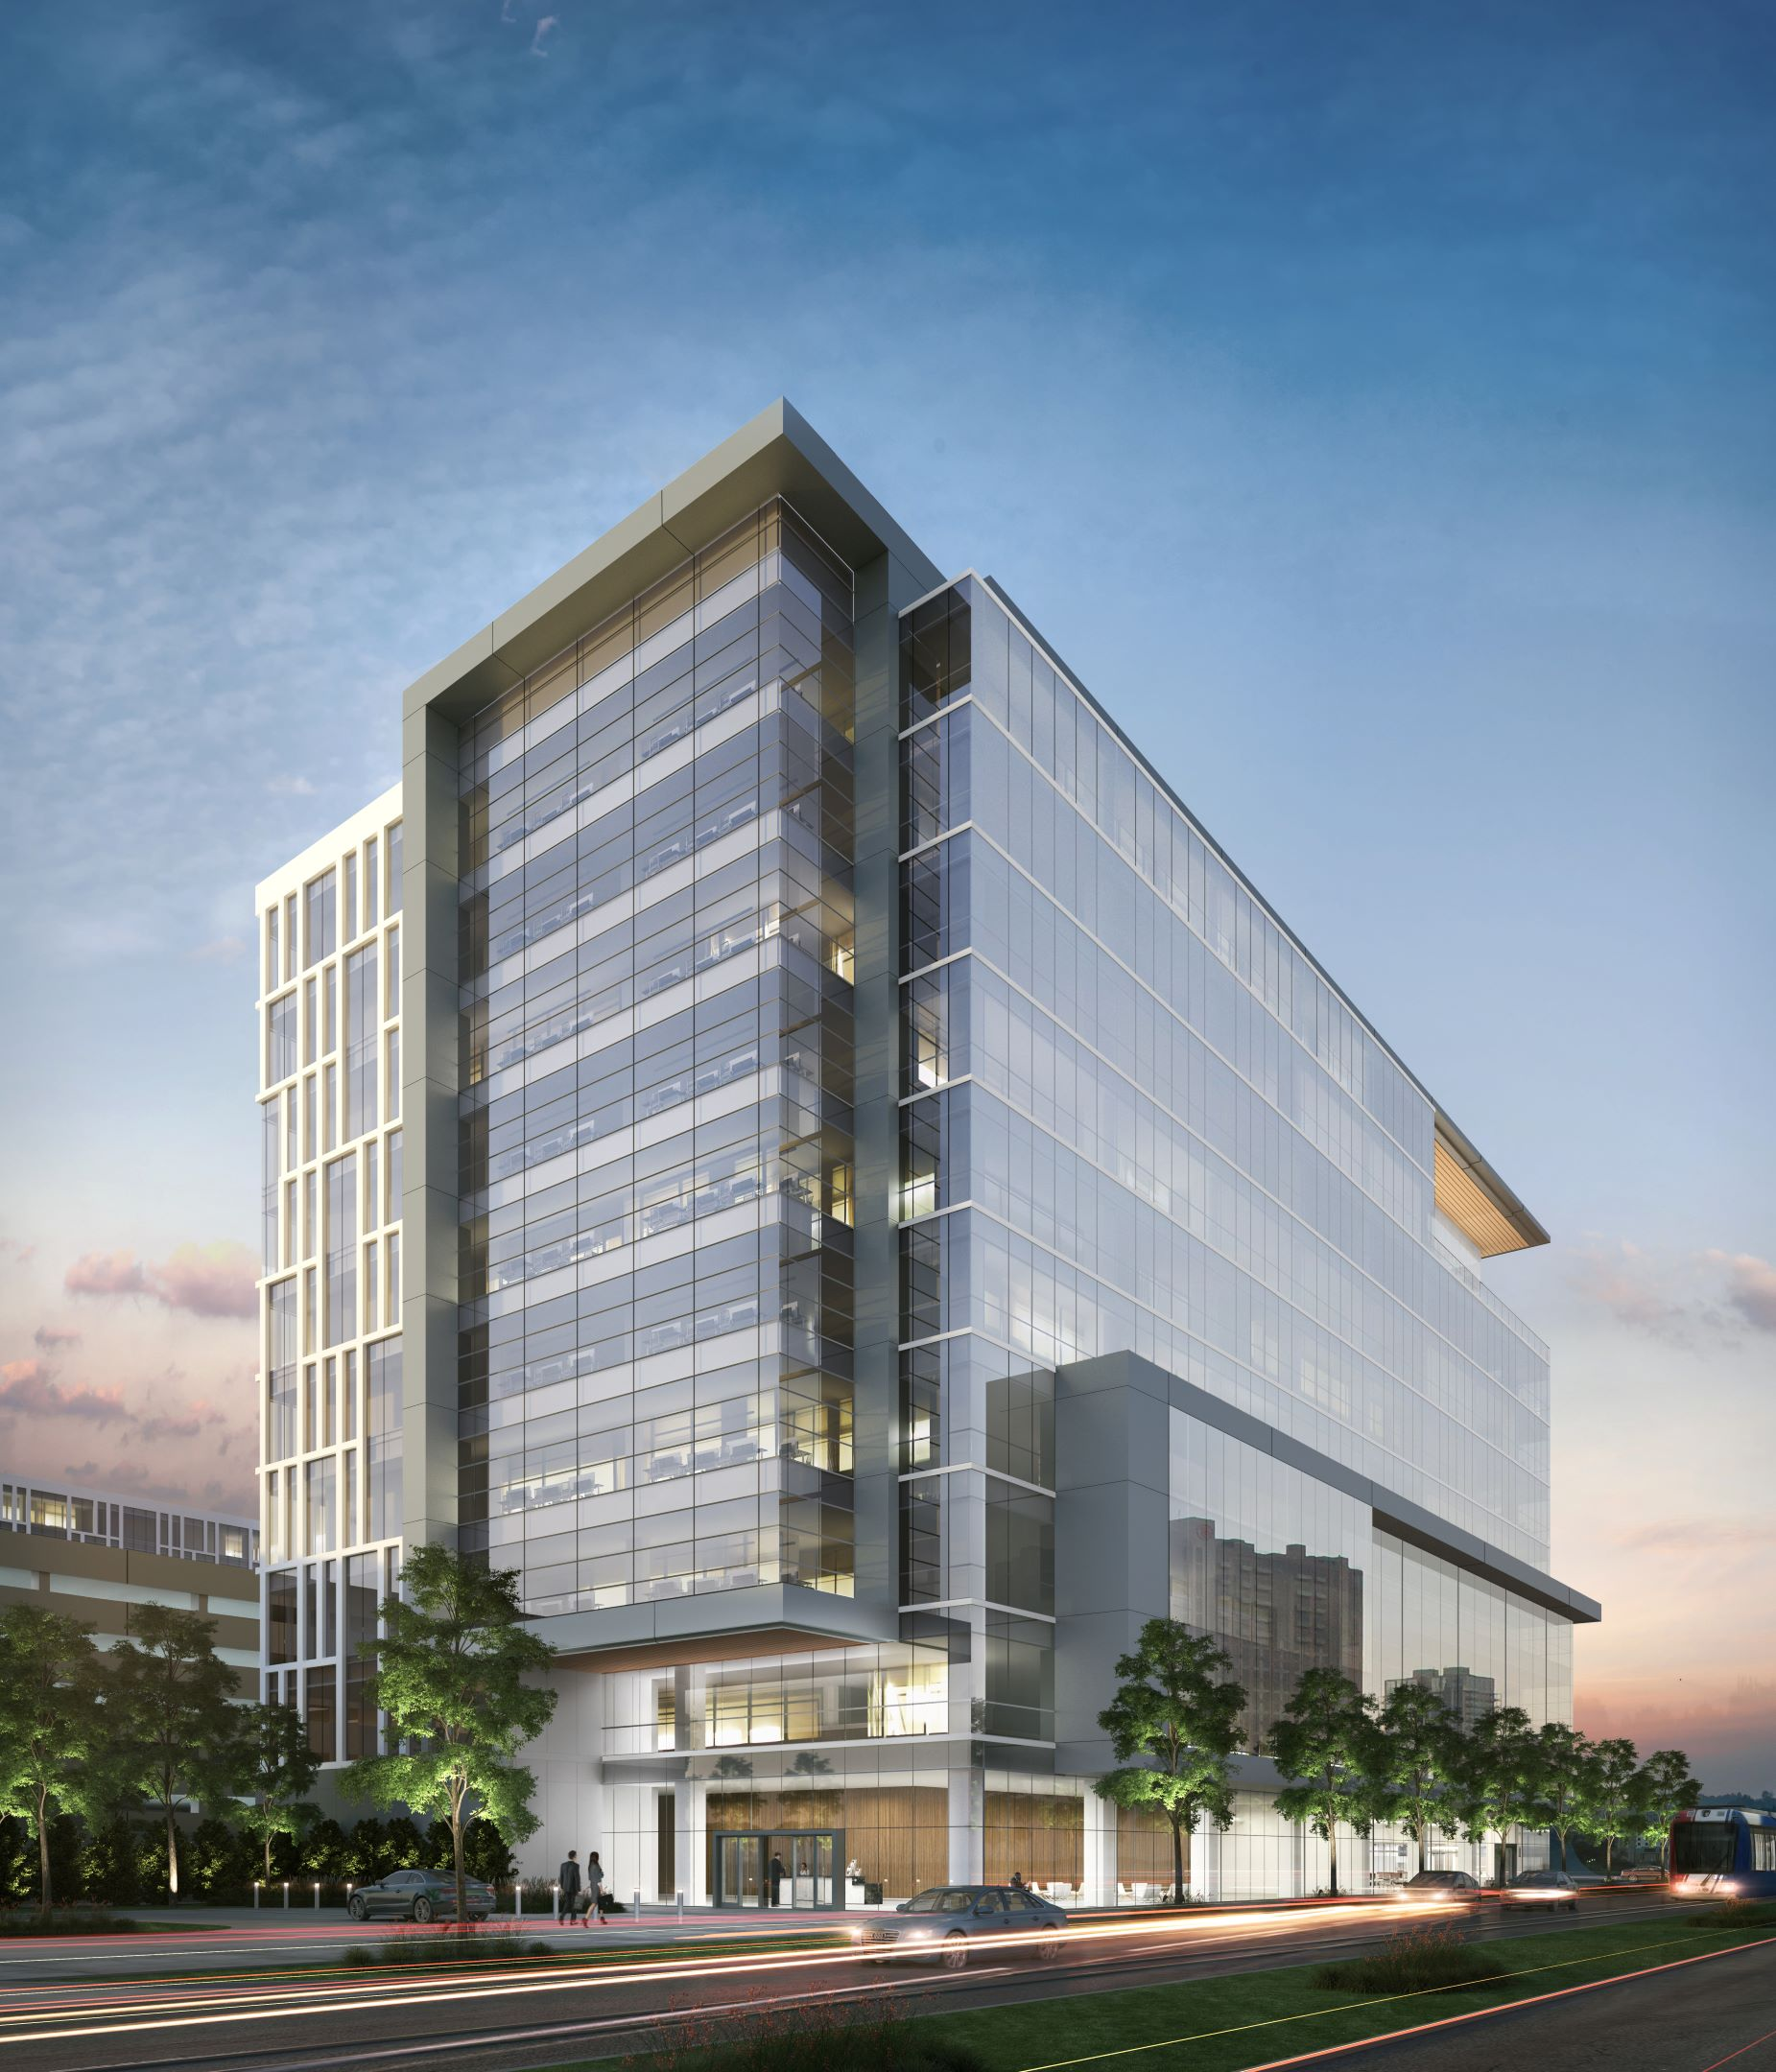 Salt Lake City Downtown Buildings: Patrinely Group And USAA Developing Office Tower In